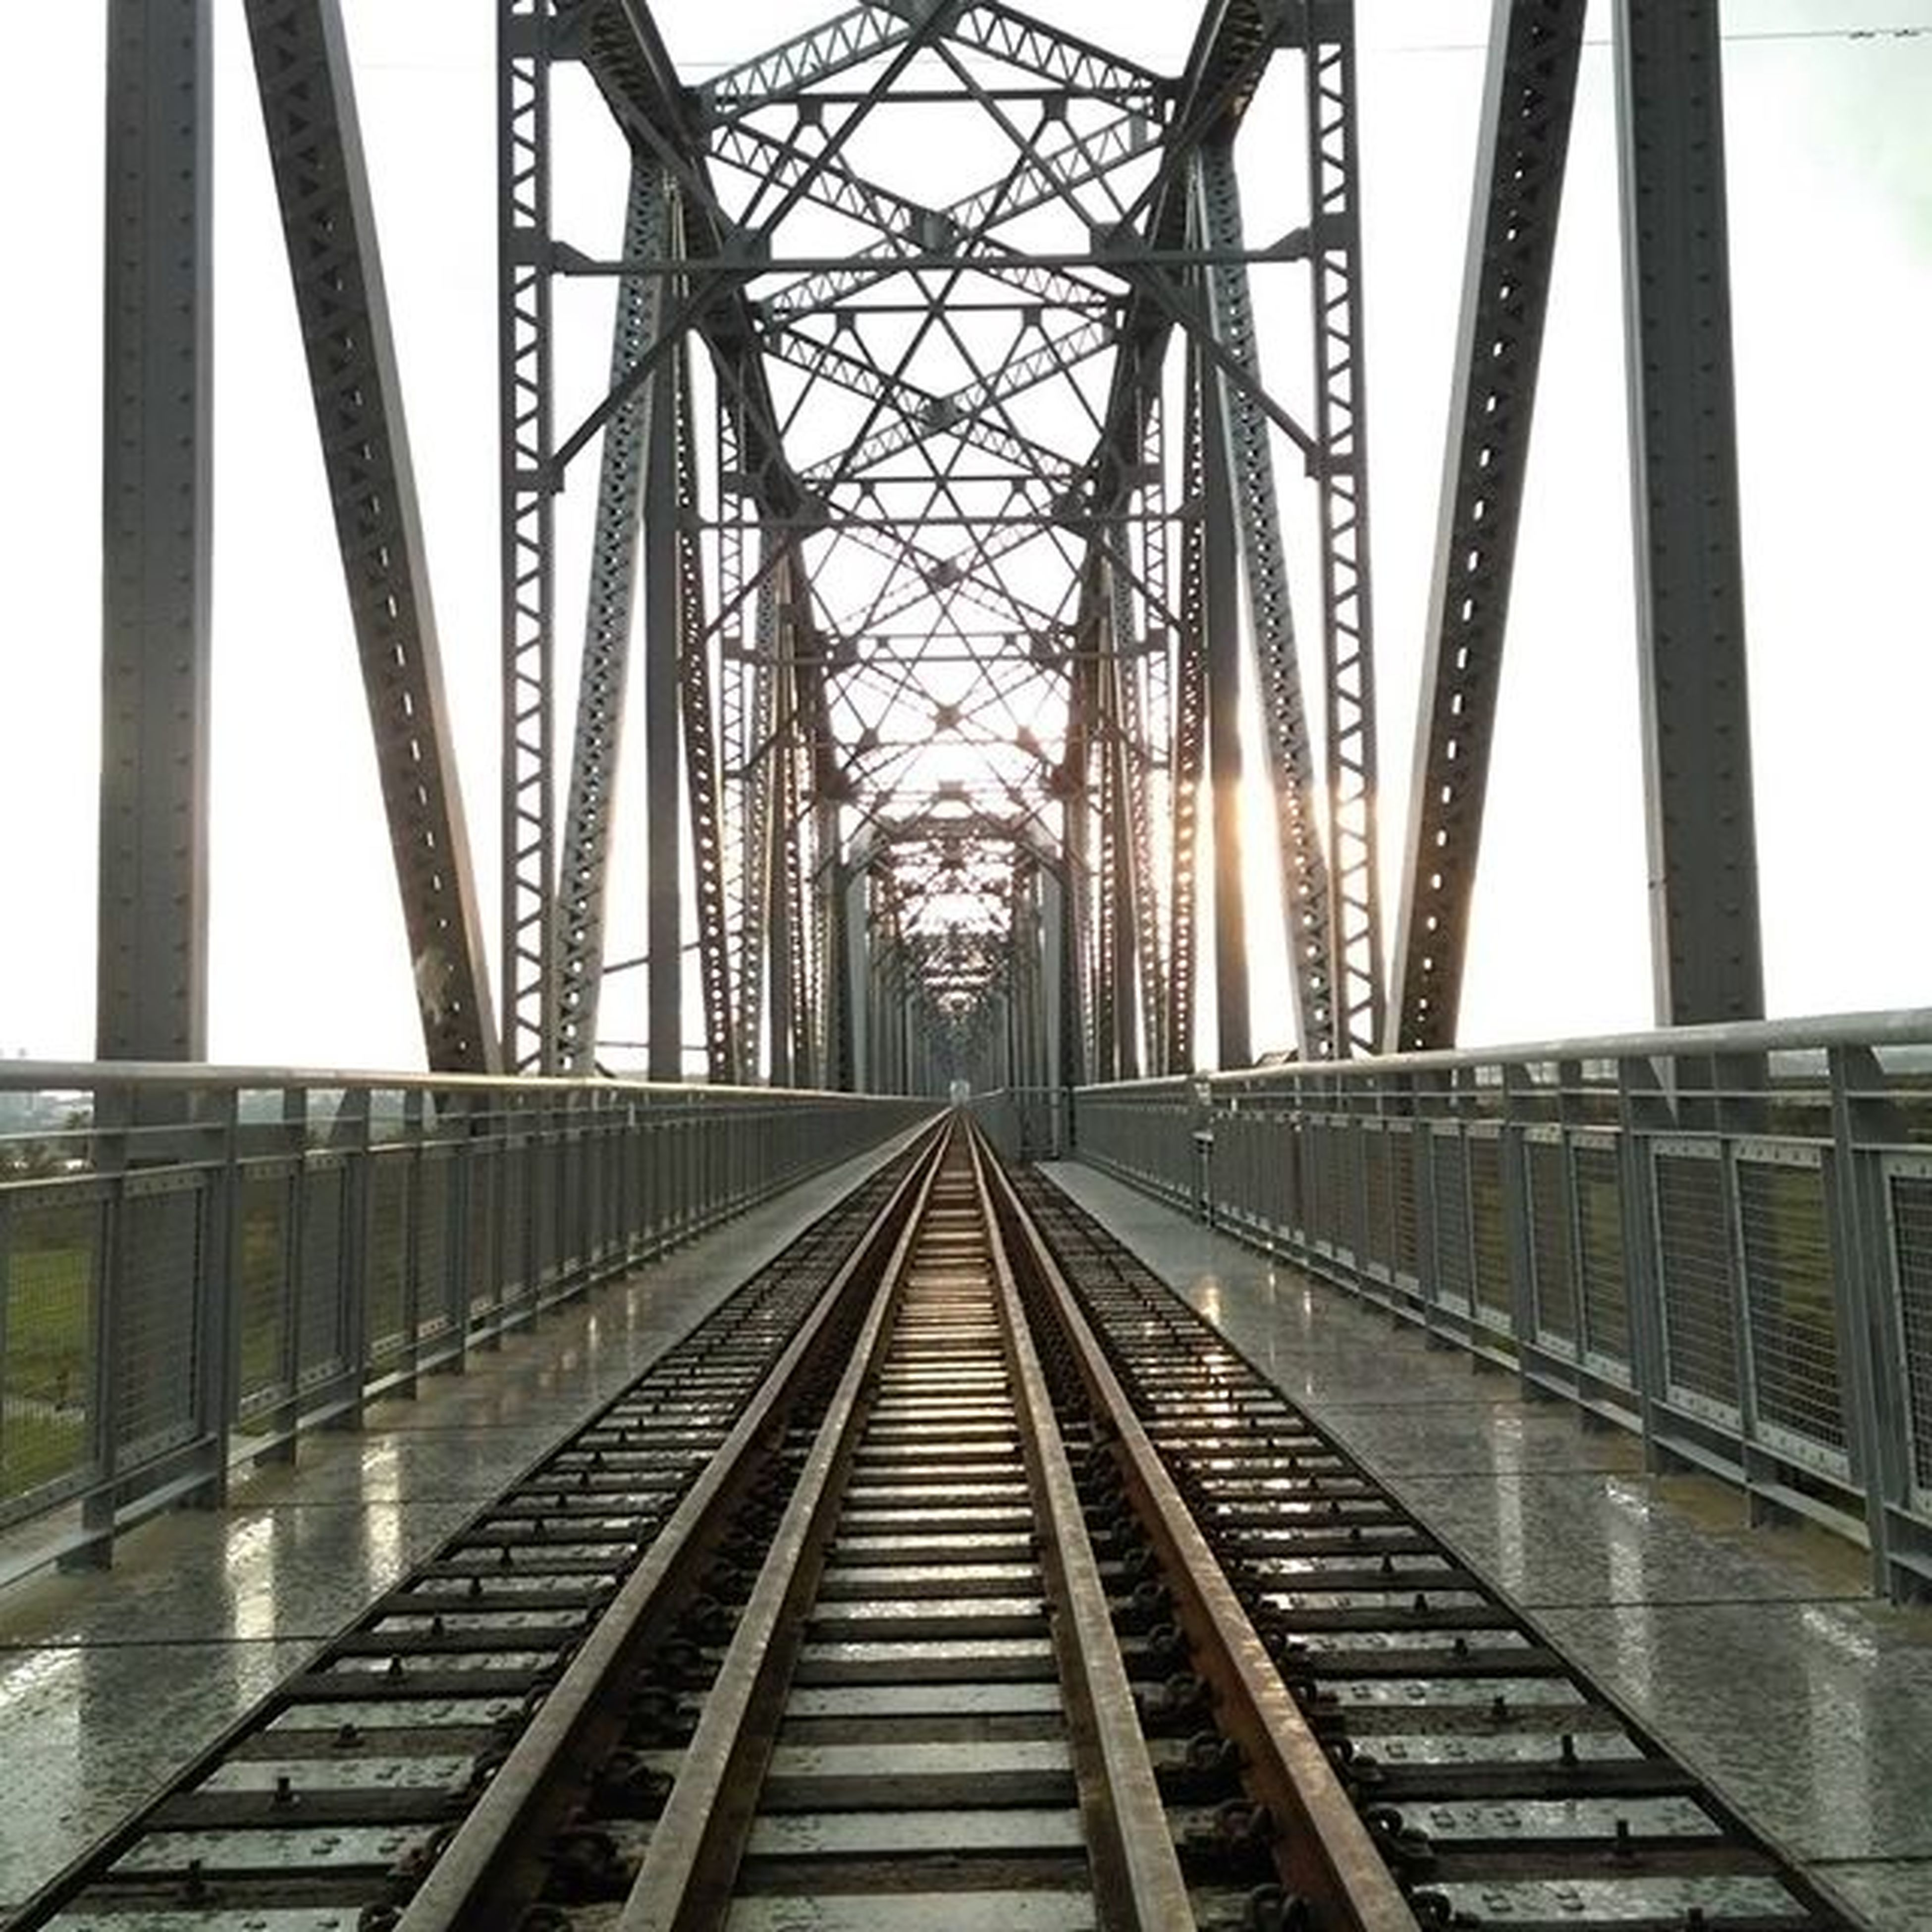 architecture, built structure, connection, diminishing perspective, bridge - man made structure, transportation, the way forward, metal, engineering, vanishing point, railroad track, rail transportation, metallic, low angle view, railway bridge, clear sky, sky, day, no people, long